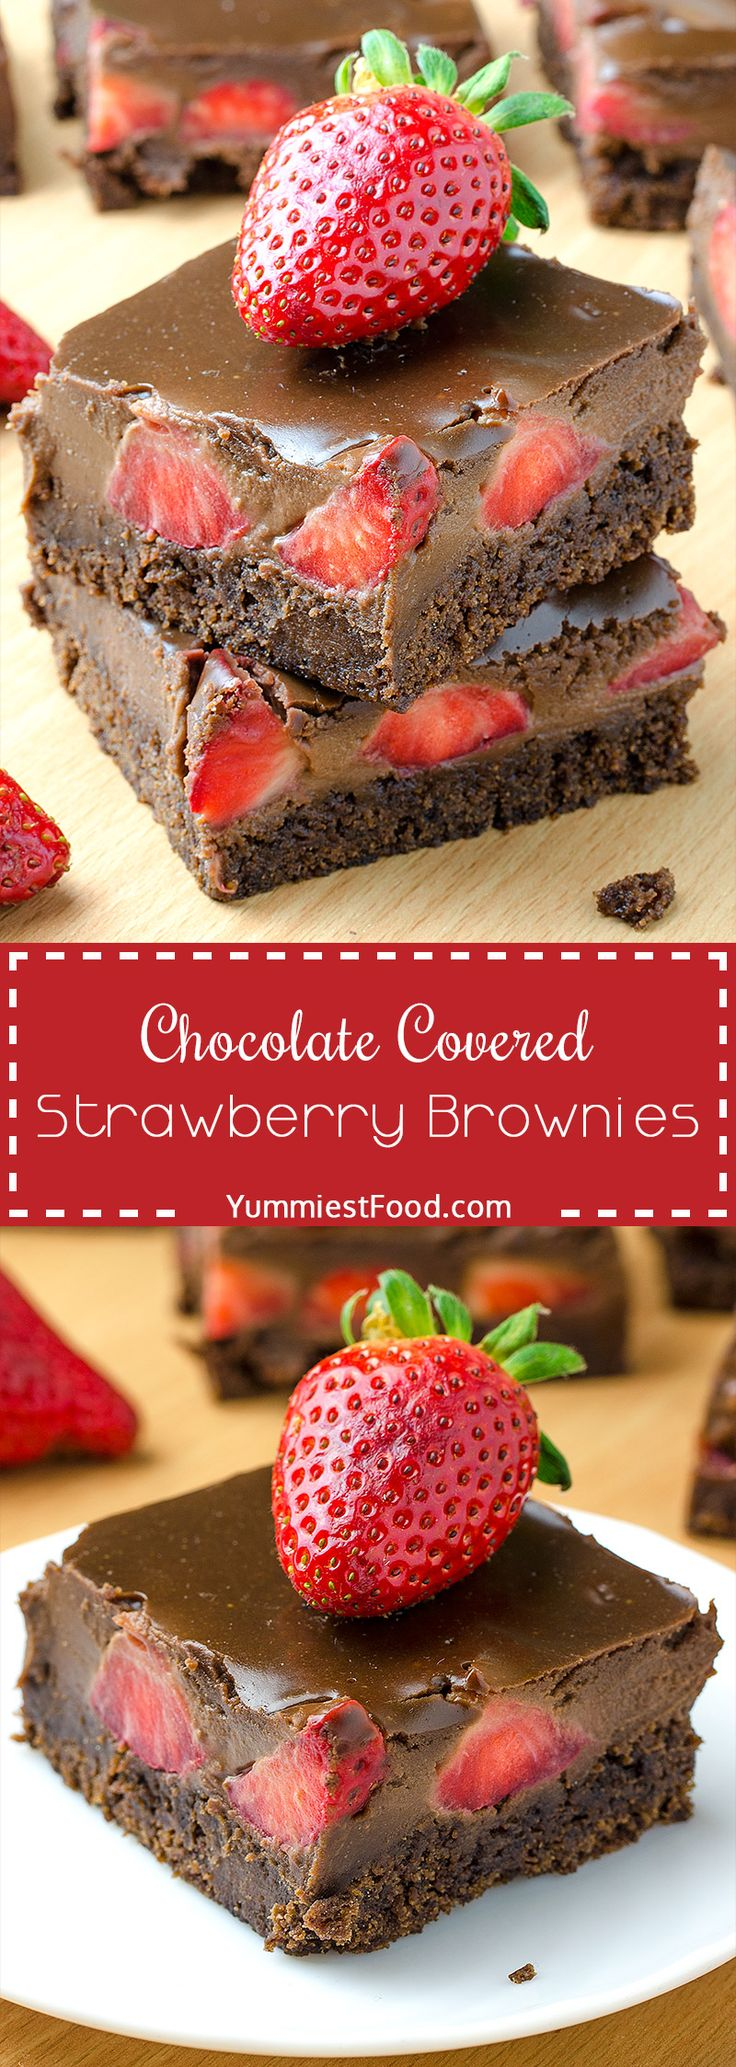 Chocolate Covered Strawberry Brownies - Perfect combination with Chocolate and Strawberries! Chocolate Covered Strawberry Brownies are so delicious, moist and very easy to make.